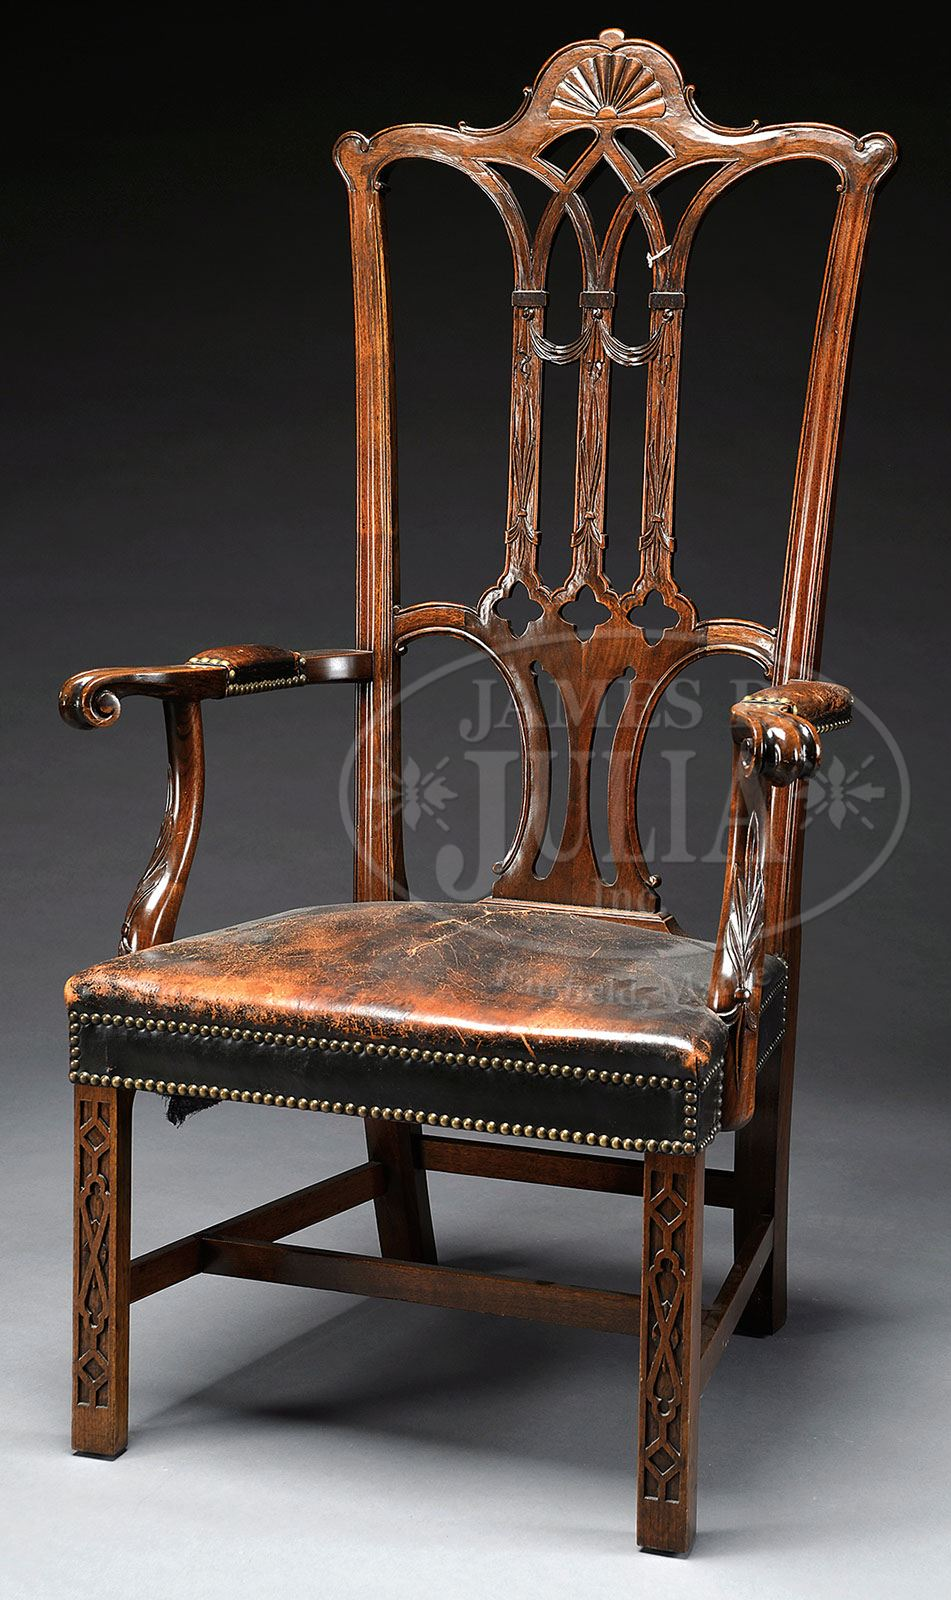 MAHOGANY REPLICA OF GEORGE WASHINGTONu0027S CHAIR IN INDEPENDENCE HALL IN  PHILADELPHIA, PA IN THE CHIPPENDALE STYLE HALL CHAIR.